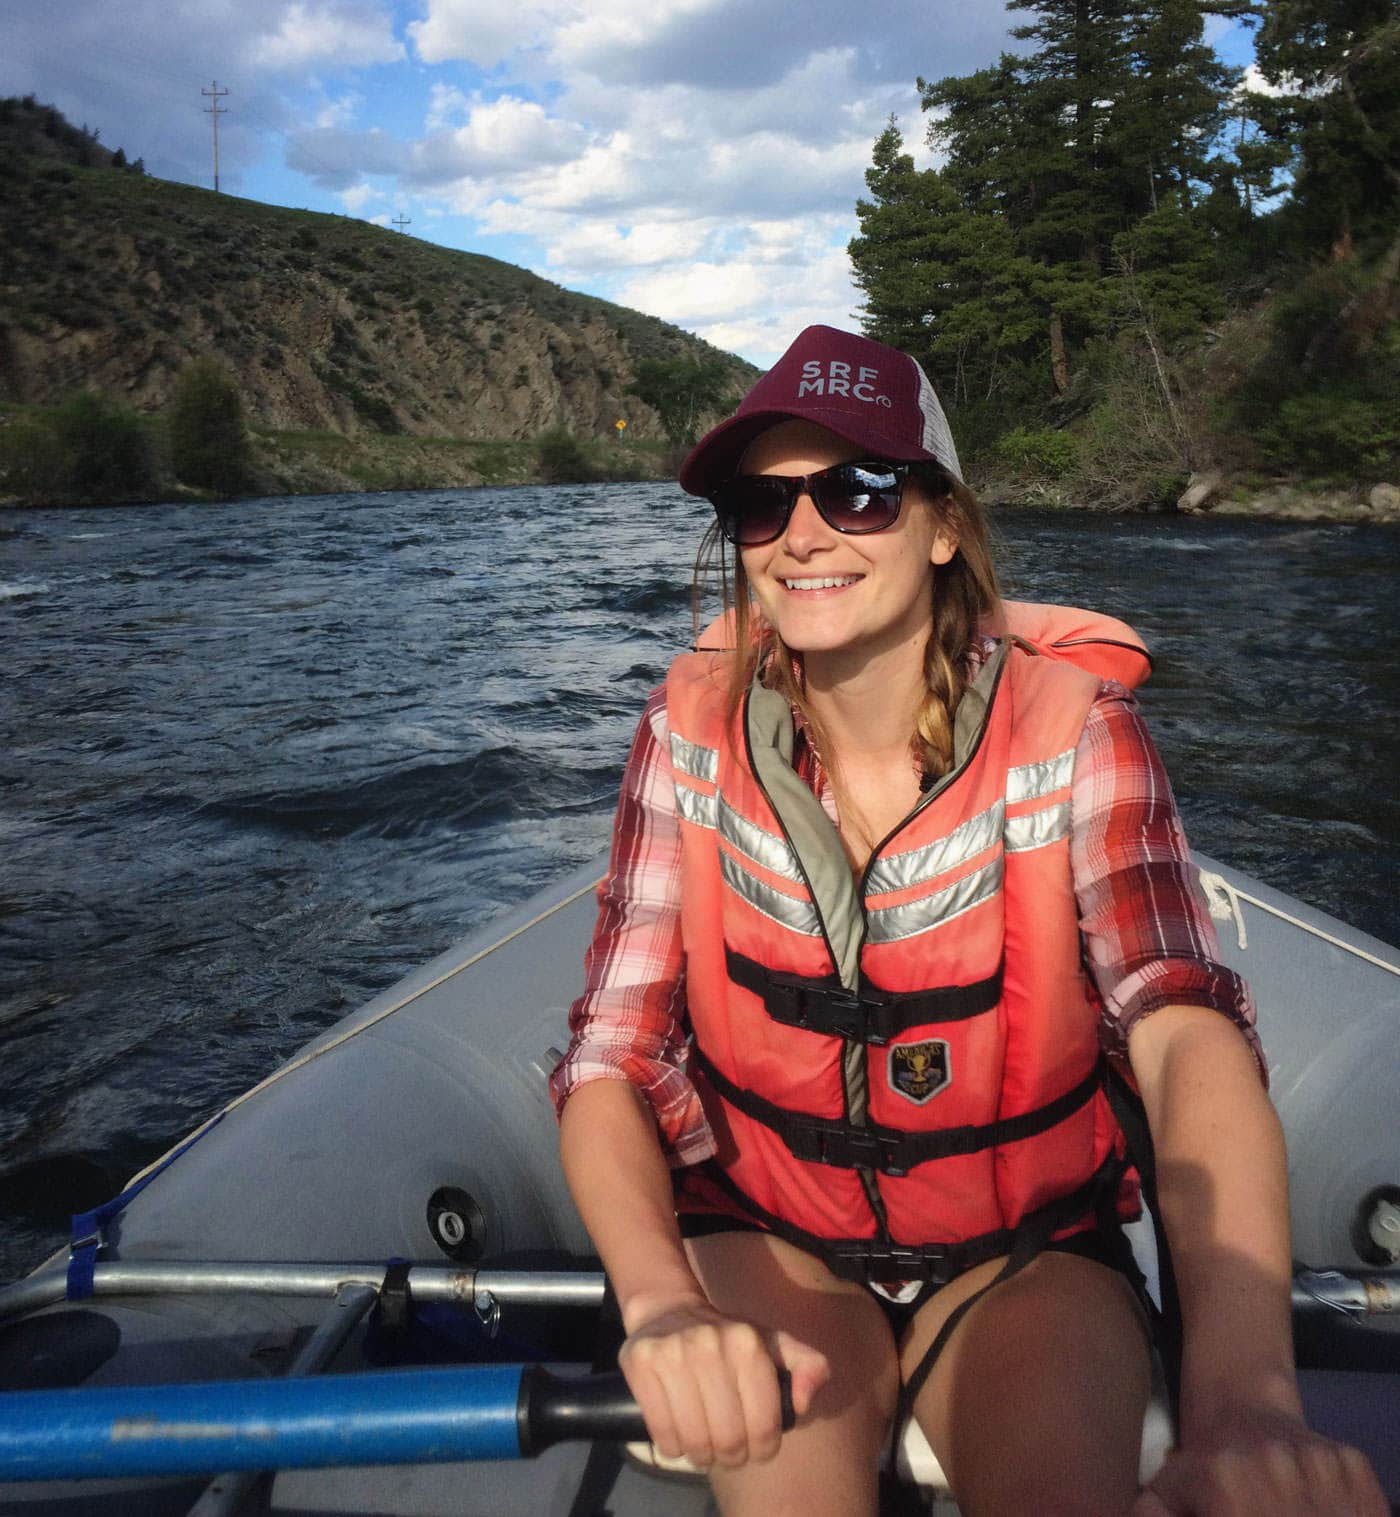 Getting Back on Whitewater - Author